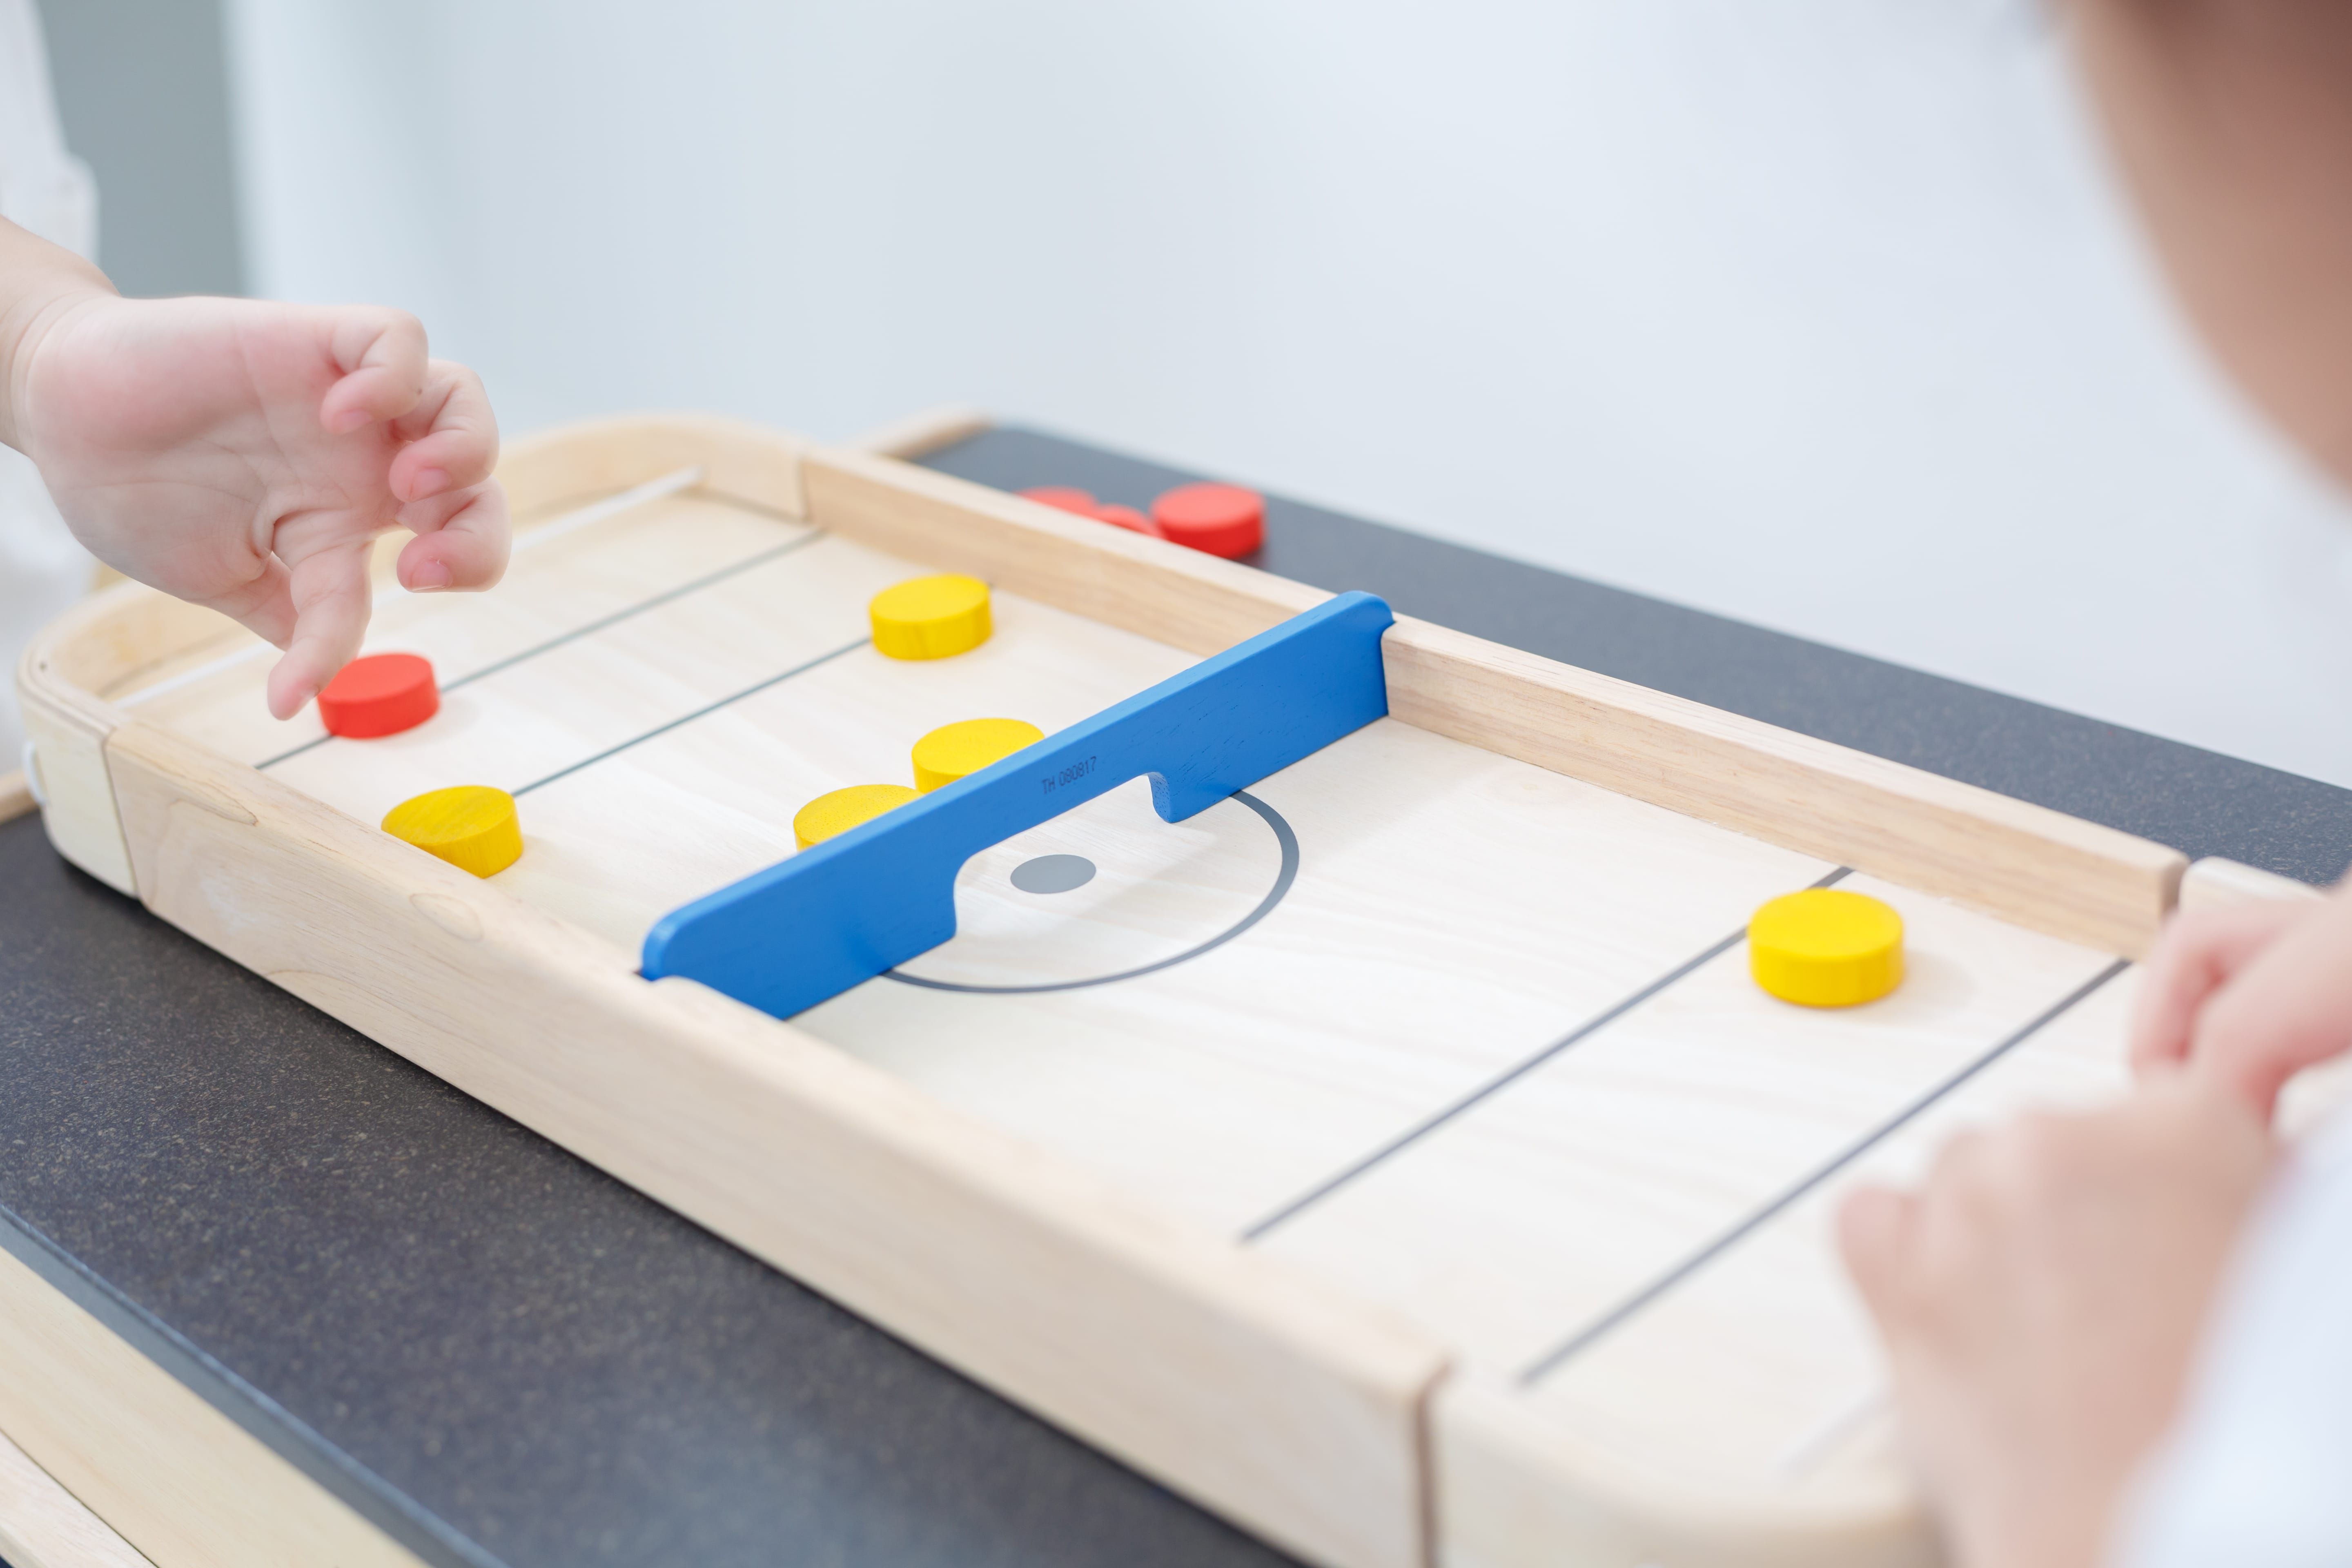 4626_PlanToys_2-IN-1_SHUFFLEBOARD-GAME_Game_and_Puzzles_Fine_Motor_Coordination_Social_Language_and_Communications_Mathematical_3yrs_Wooden_toys_Education_toys_Safety_Toys_Non-toxic_1.jpg